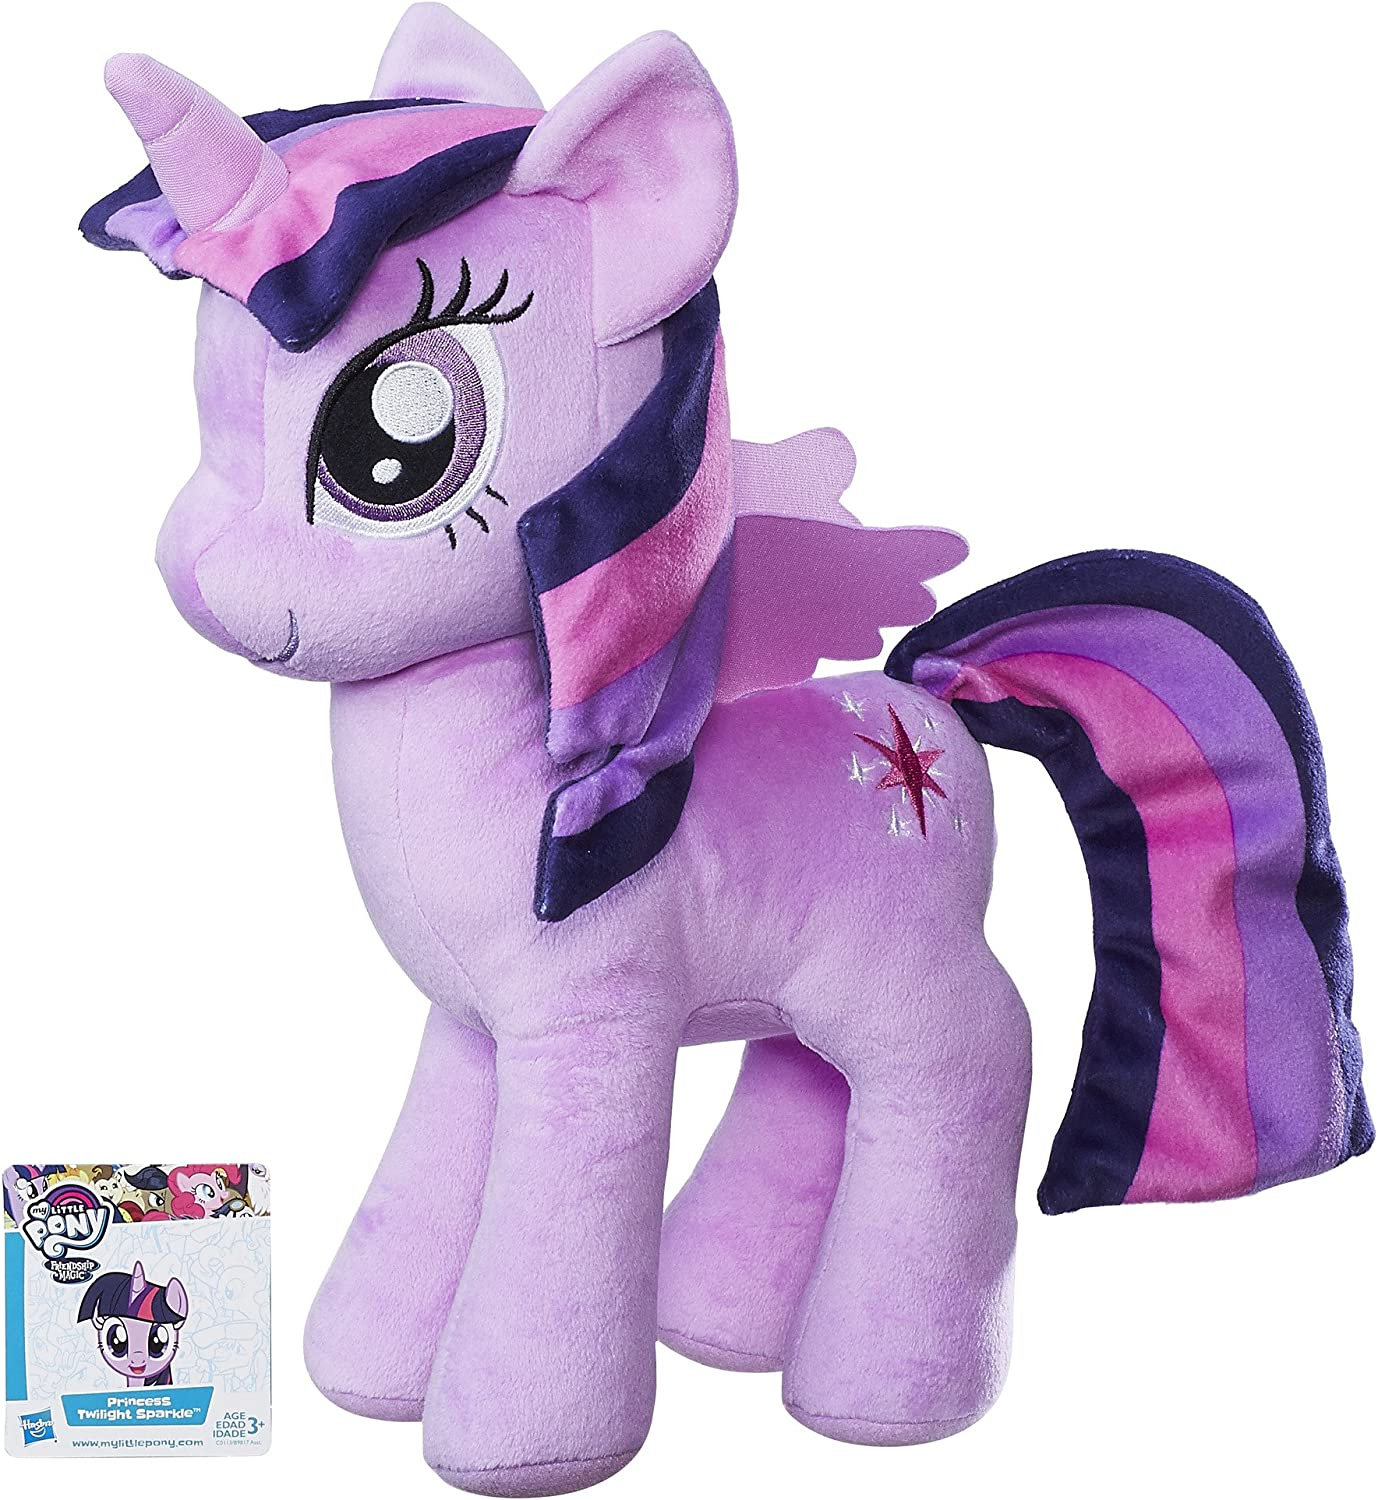 Amazon Com My Little Pony Friendship Is Magic Princess Twilight Sparkle Cuddly Plush Toys Games